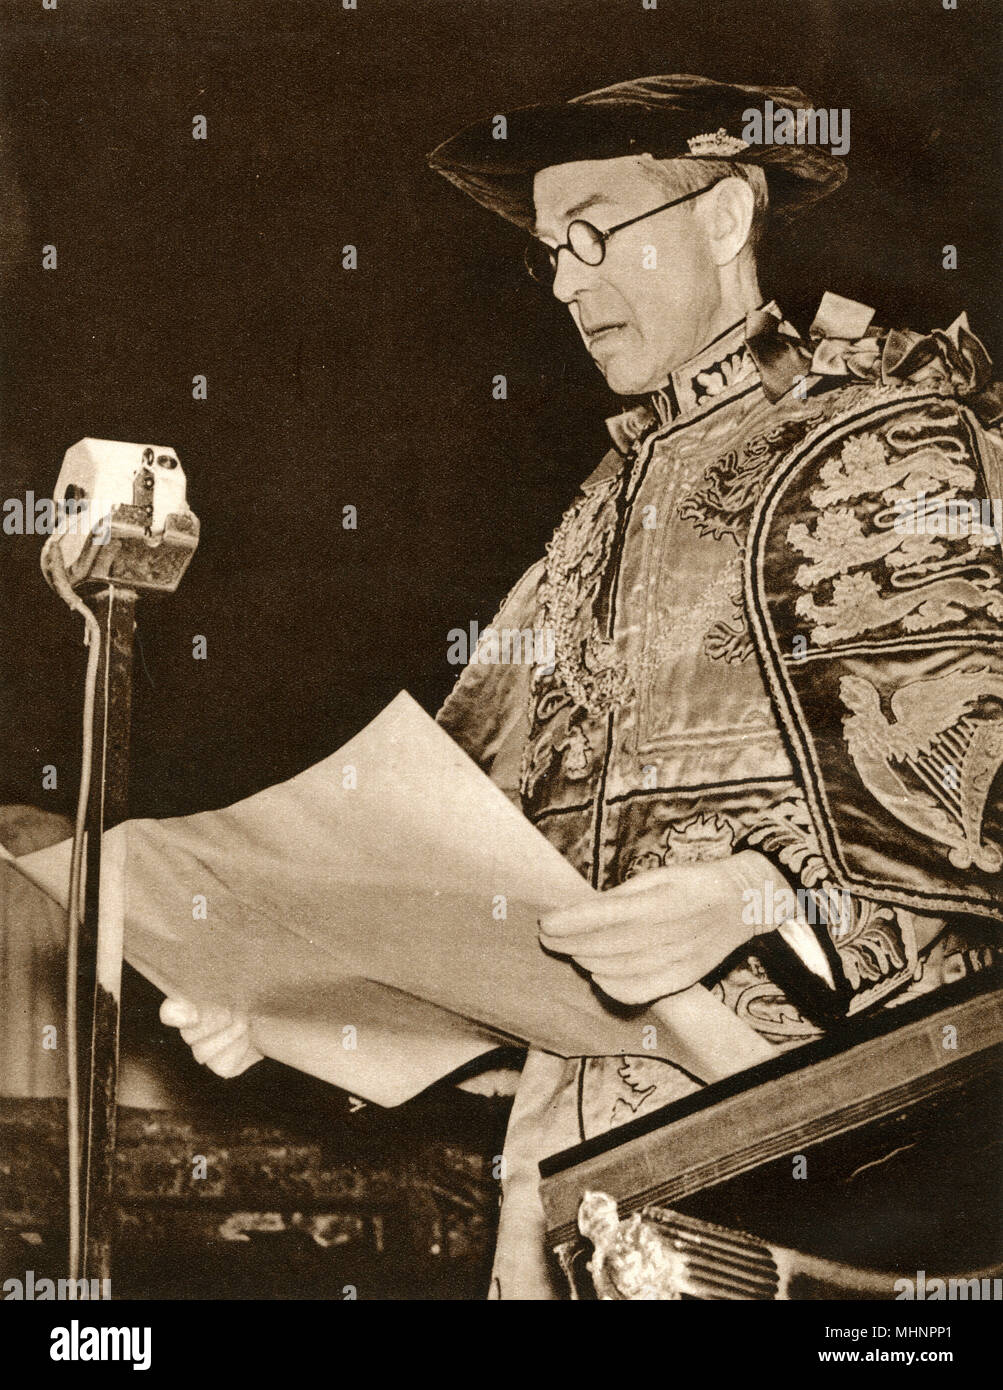 Prince Albert, Duke of York (1895-1952) is proclaimed in London and throughout the Empire as the new sovereign, King George VI. Here the Lancaster Herald, Mr. A. G. B. Russell reads the proclamation at Charing Cross, London.     Date: 1936 - Stock Image